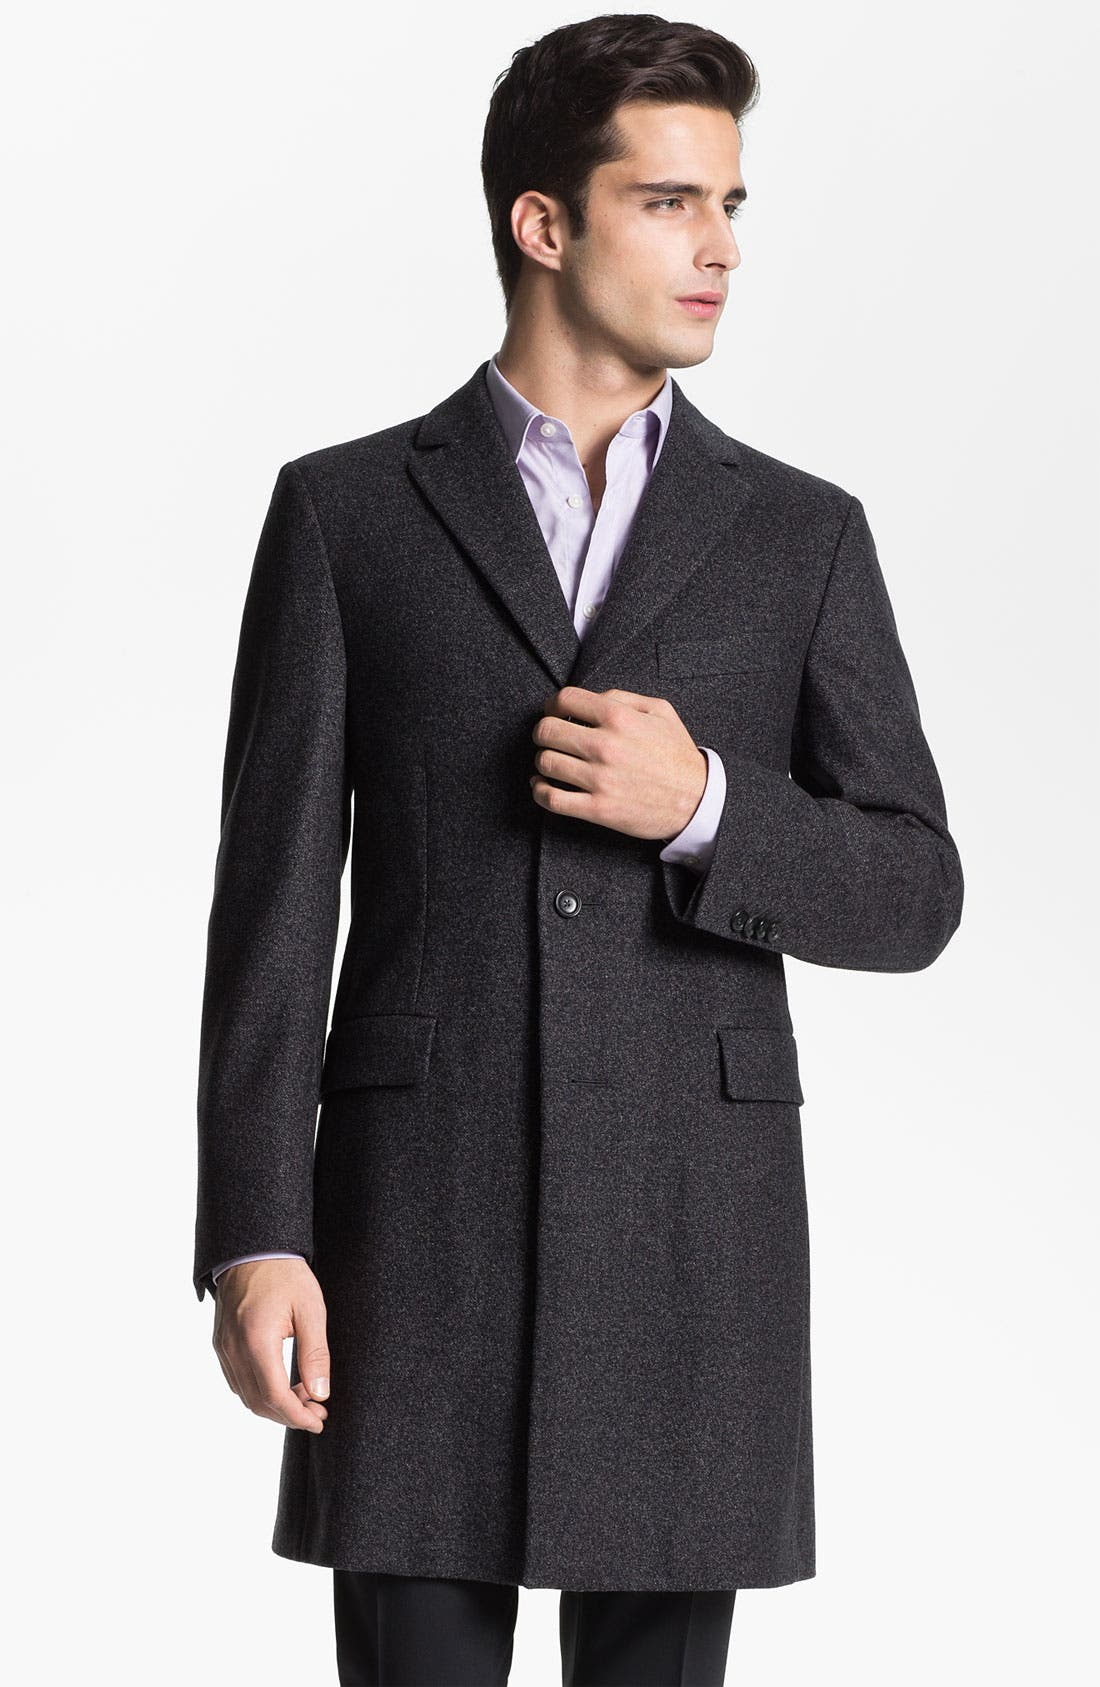 Alternate Image 1 Selected - Z Zegna 'Vintage Granite' Wool Top Coat